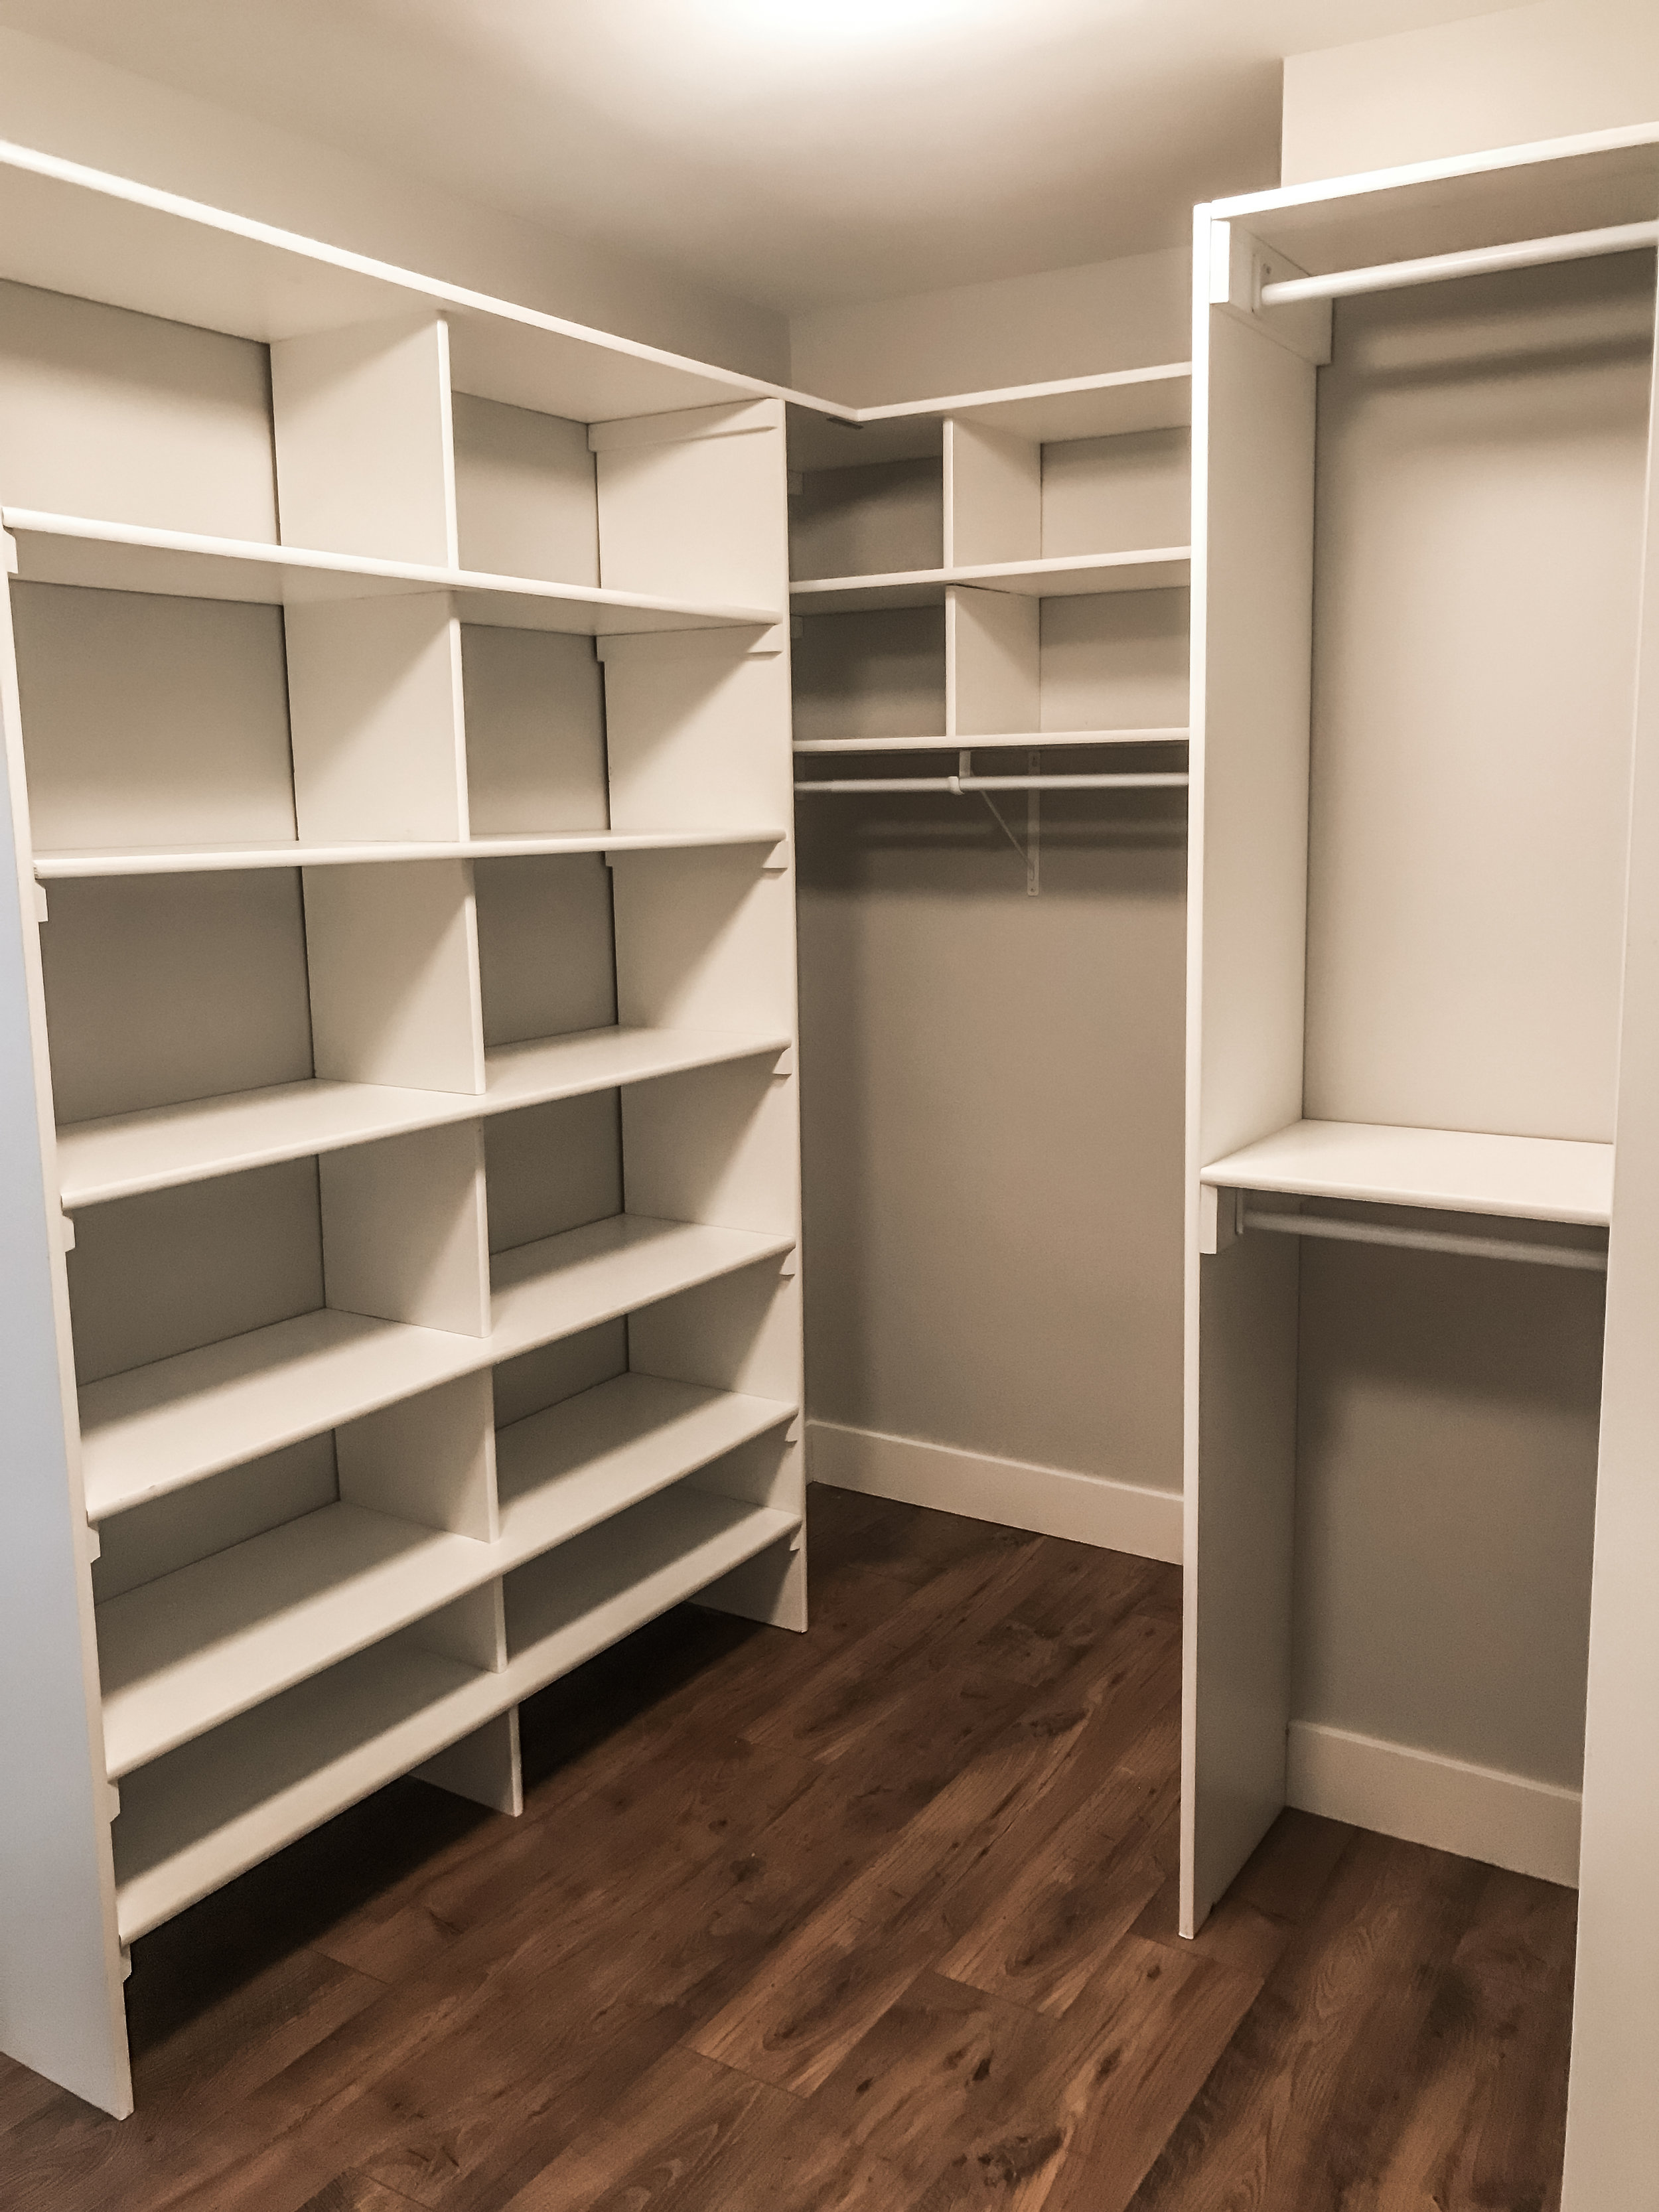 Walk-through master closet leads to the master bathroom.